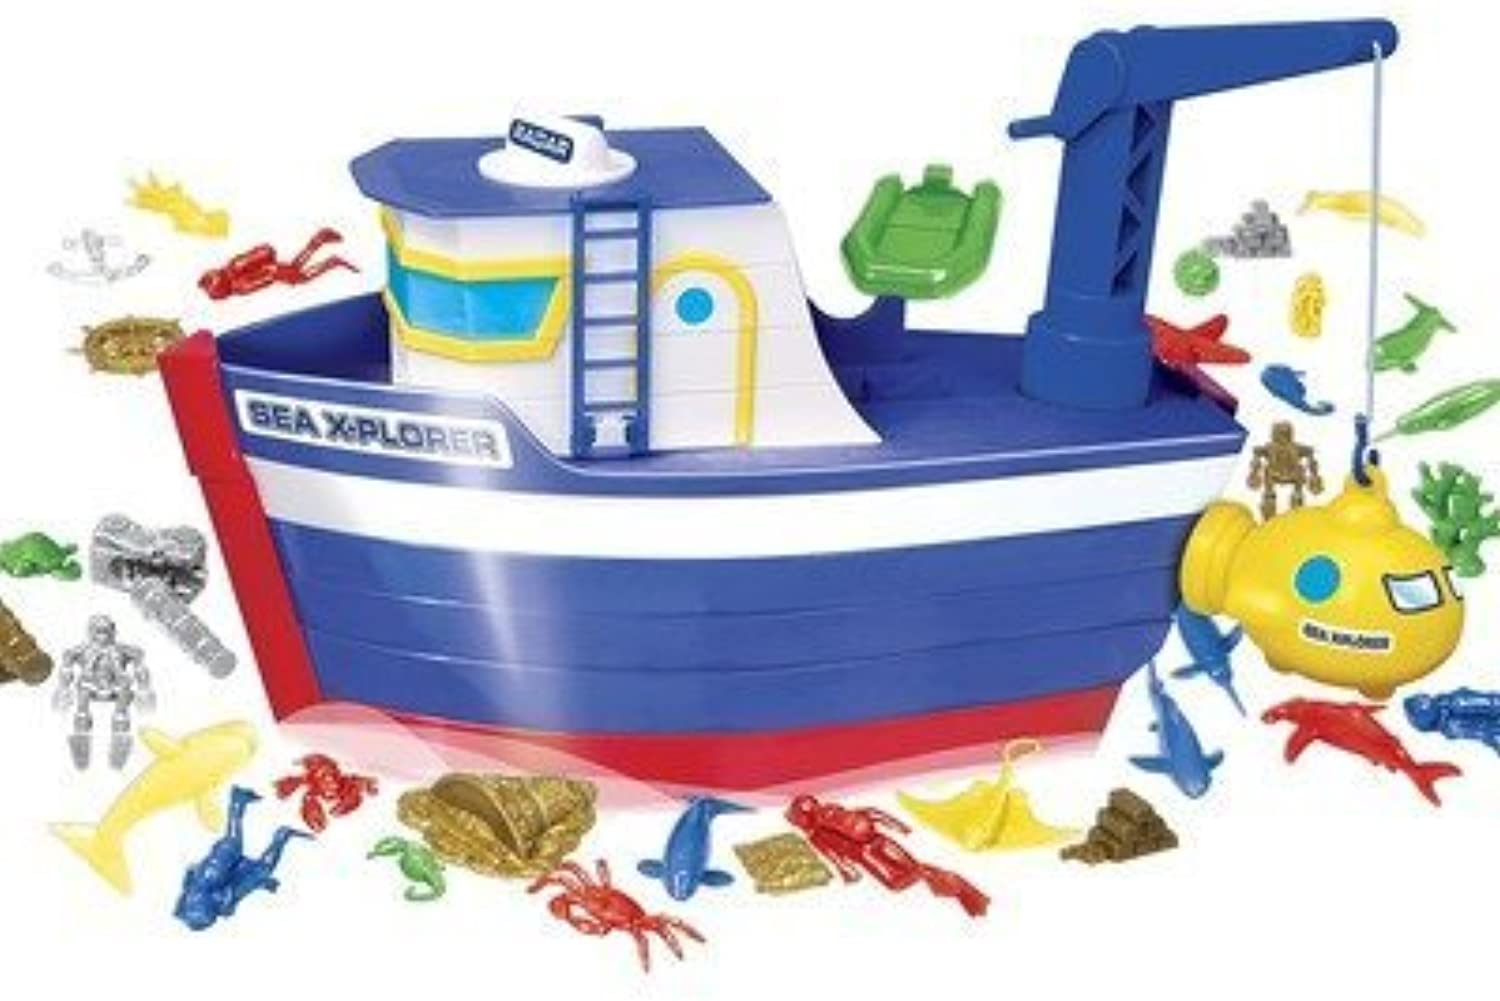 Tier Toys Stackers Sea X'Plorer by Tier Toys